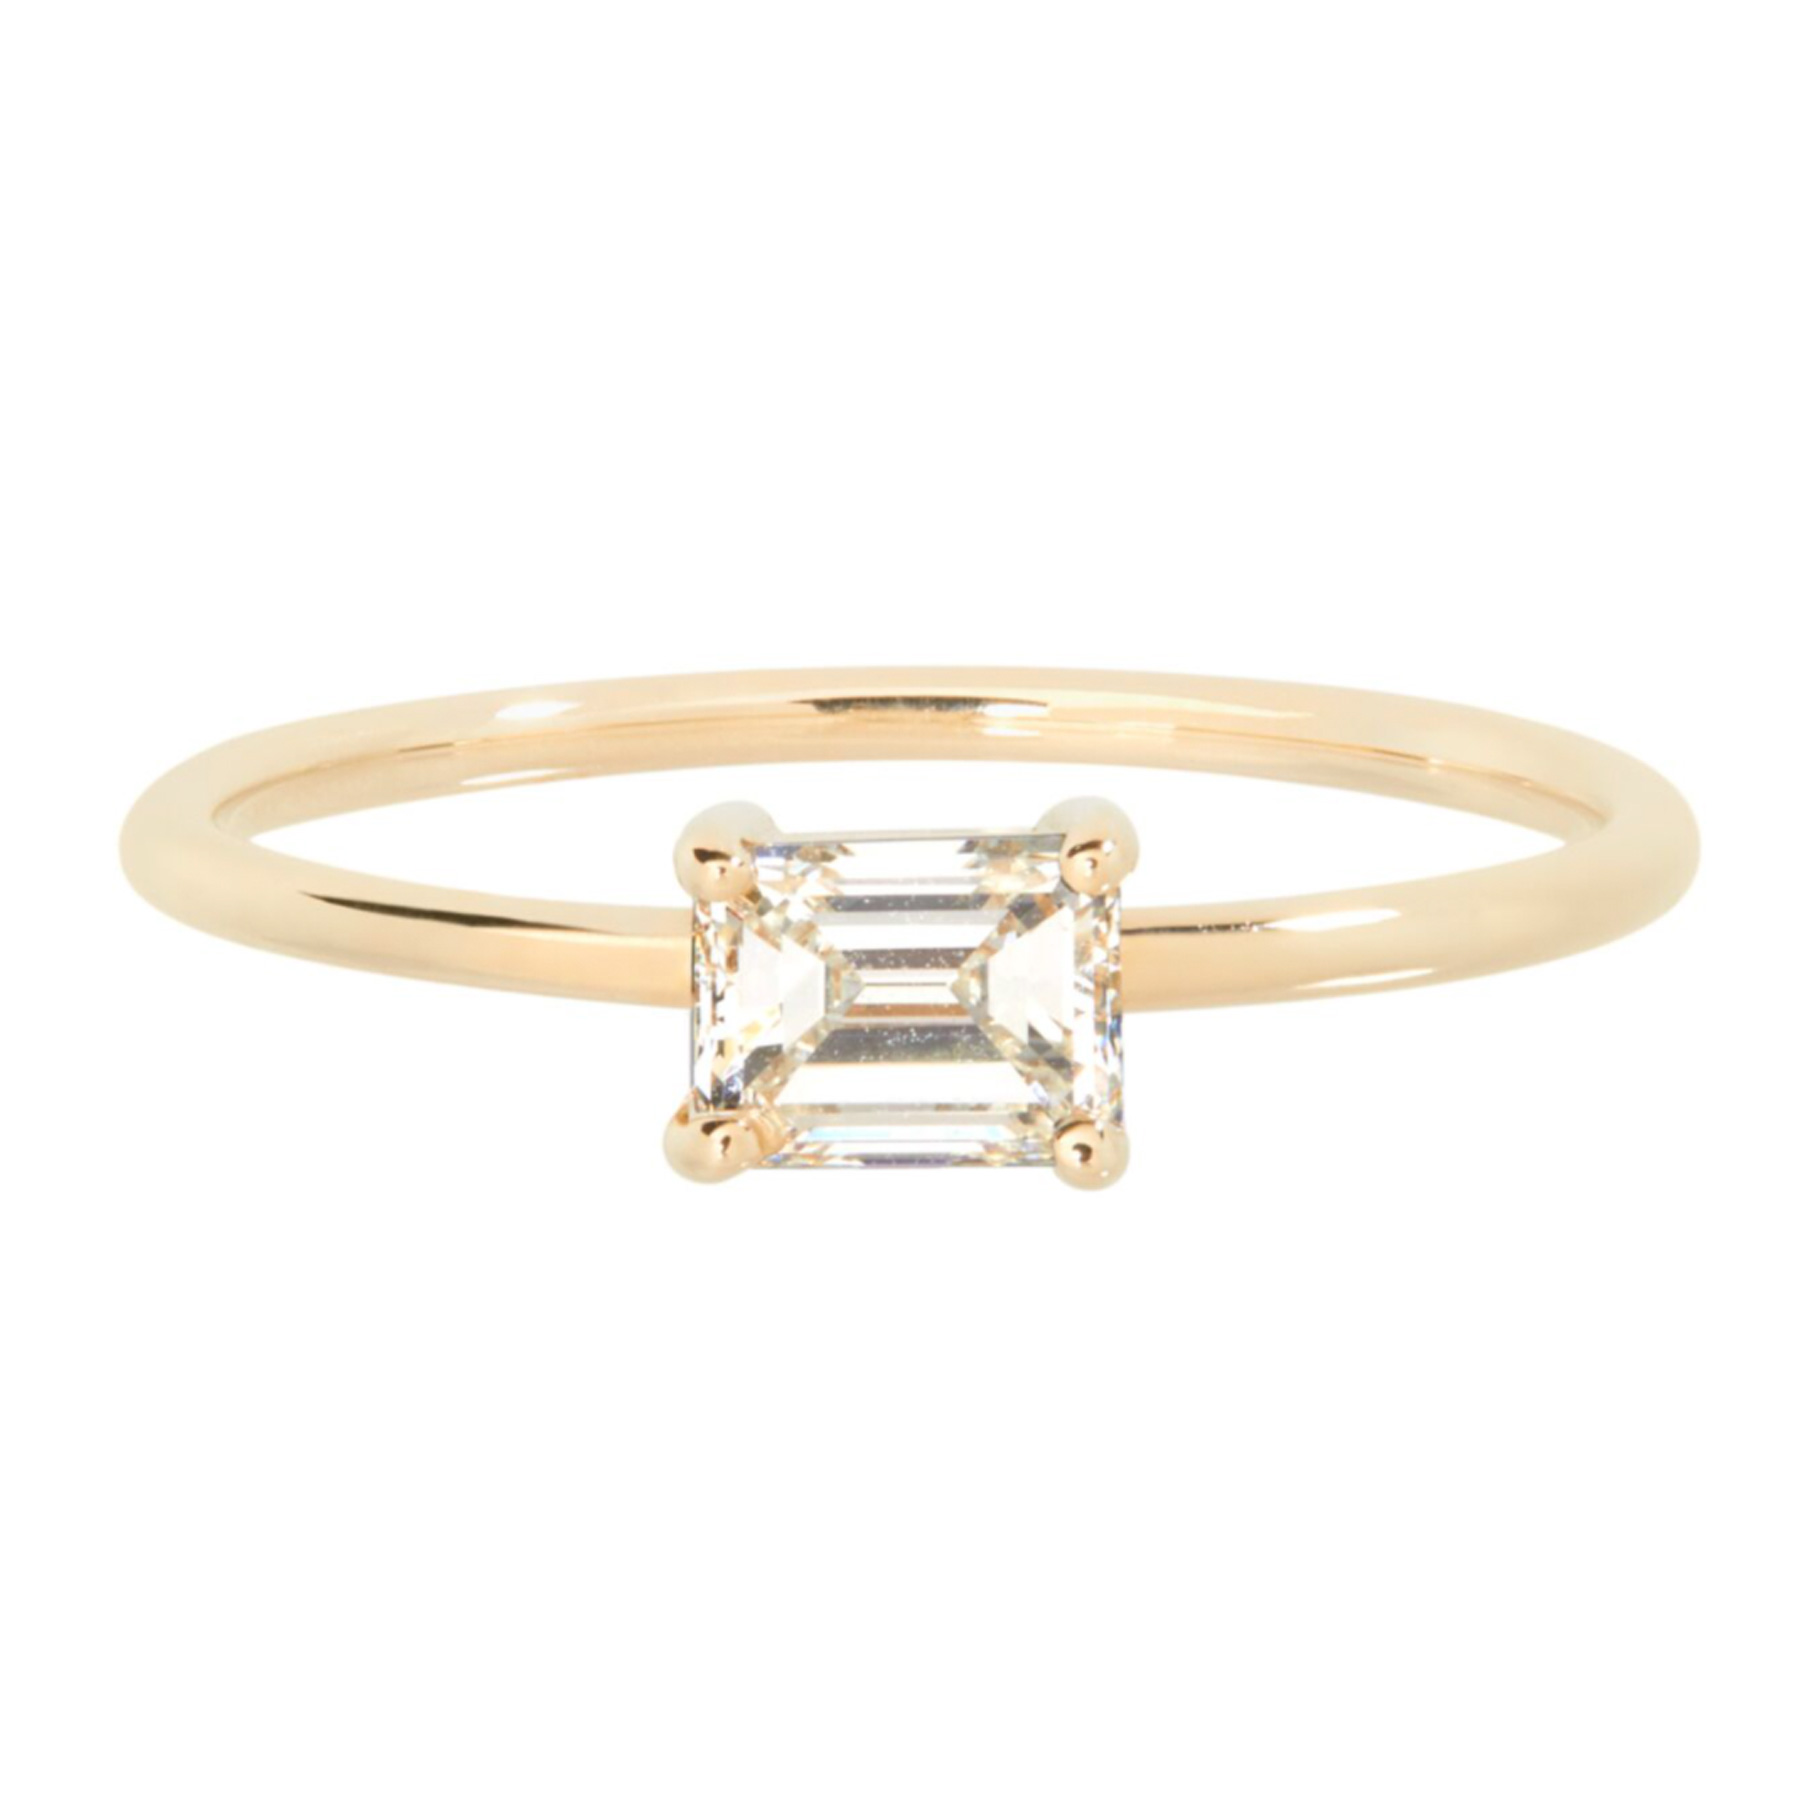 Catbird NYC simple solitaire emerald cut diamond engagement ring